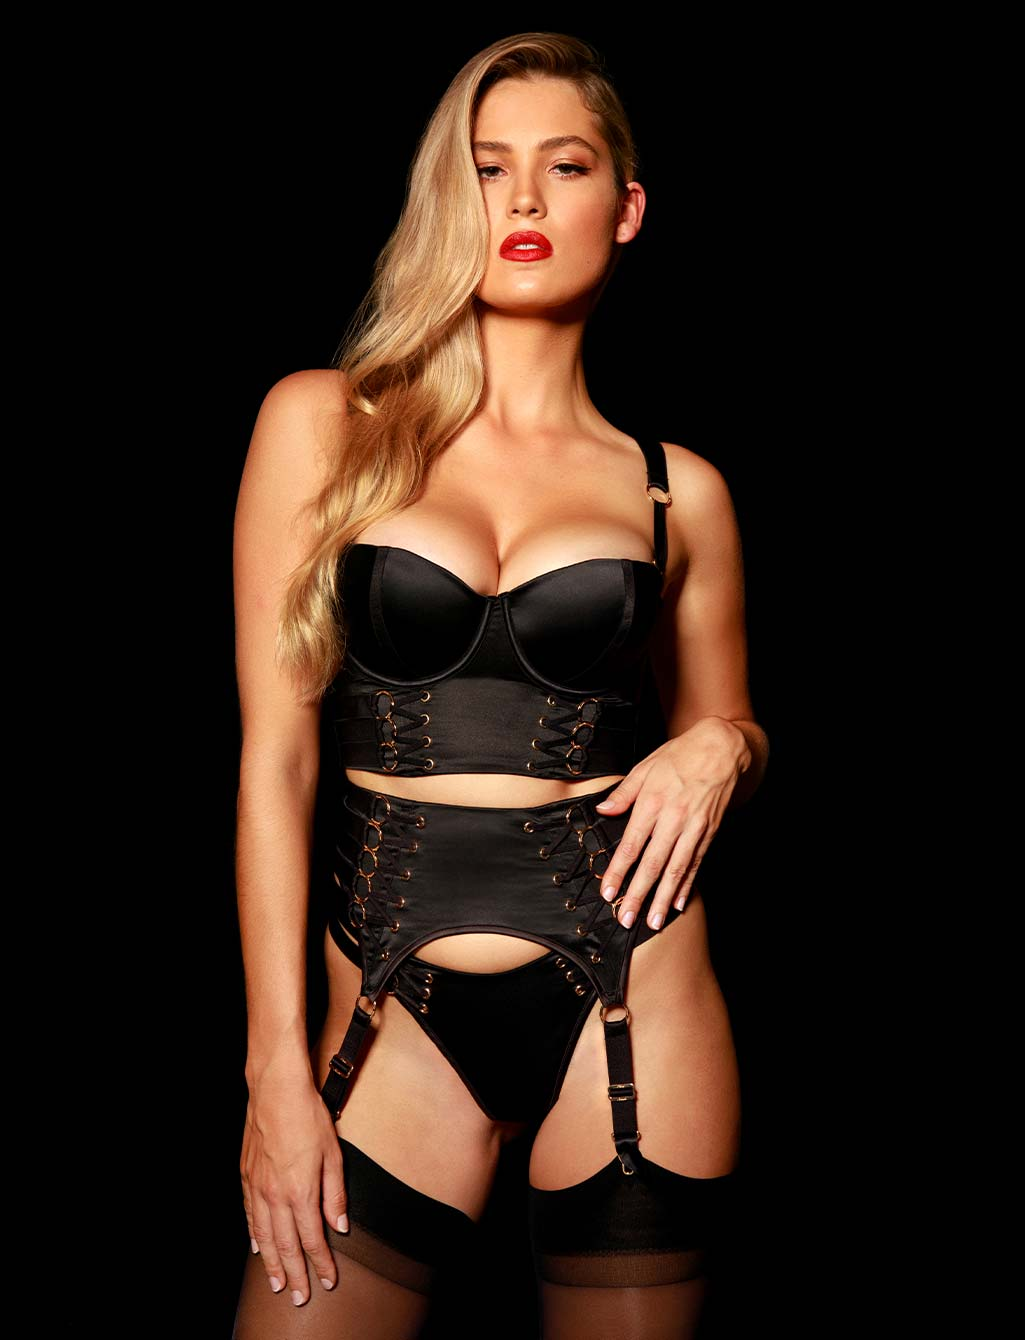 Stevie Suspender - Shop Suspender | Honey Birdette UK